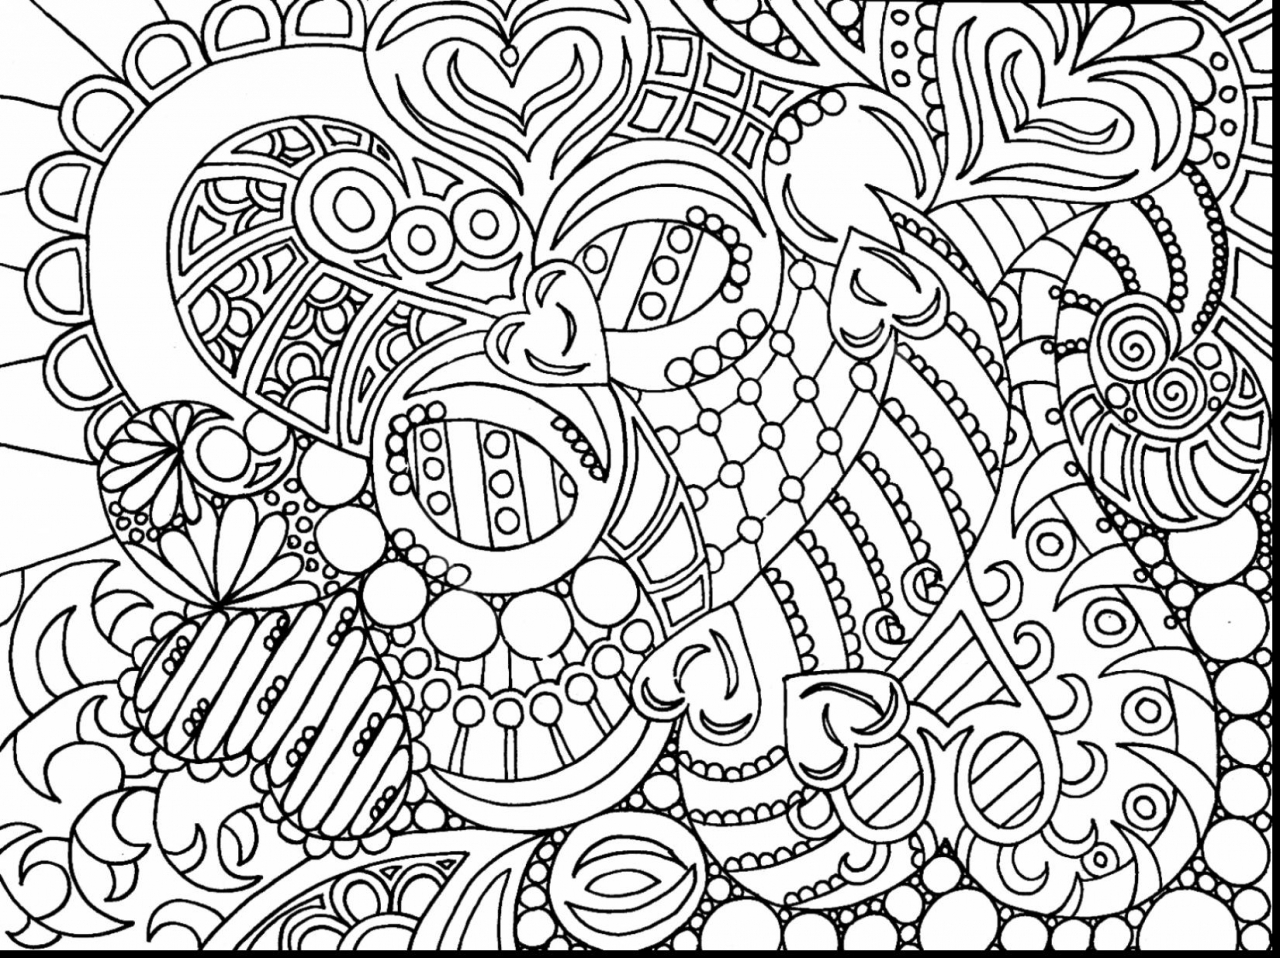 Printable Difficult Coloring Pages for Adults   46271